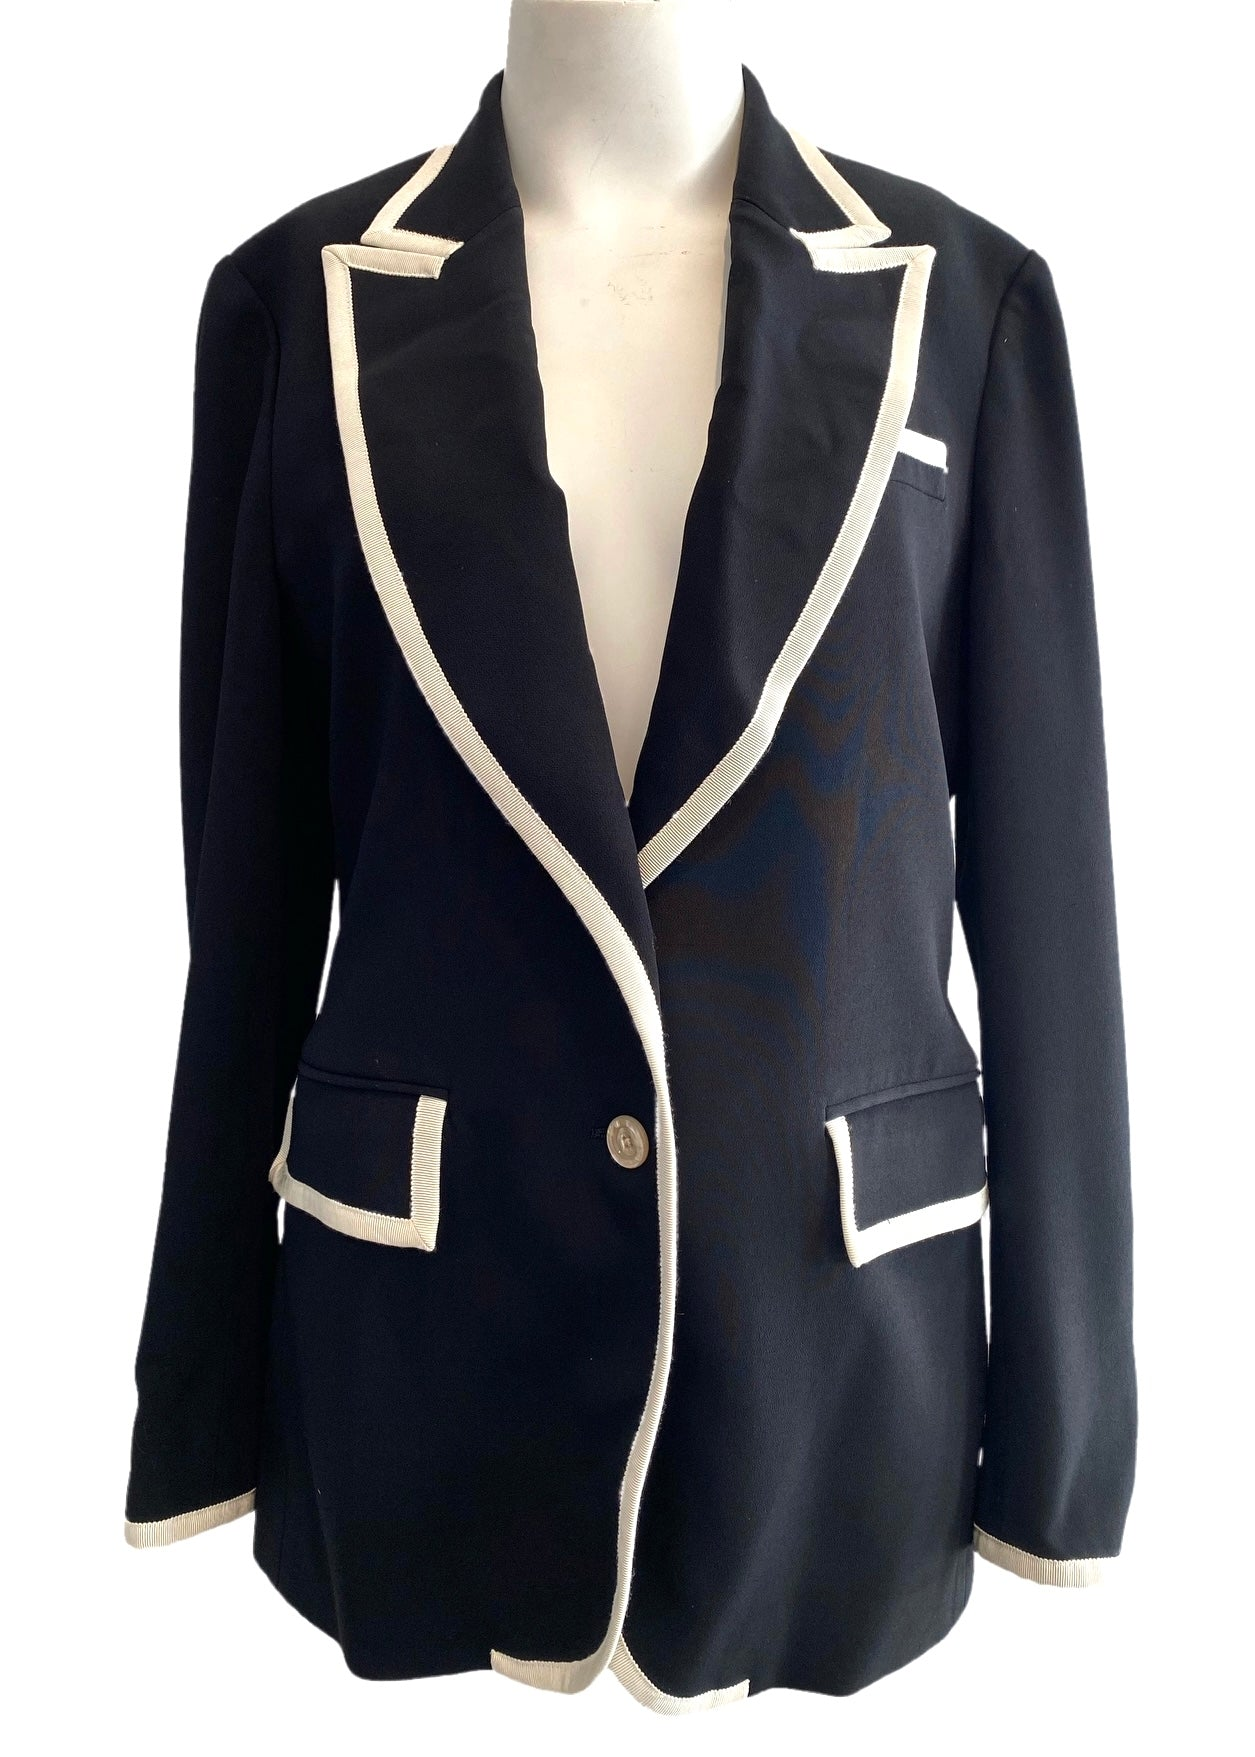 Gucci Black Jacket with Ivory Grosgrain Ribbon Trim Size 44